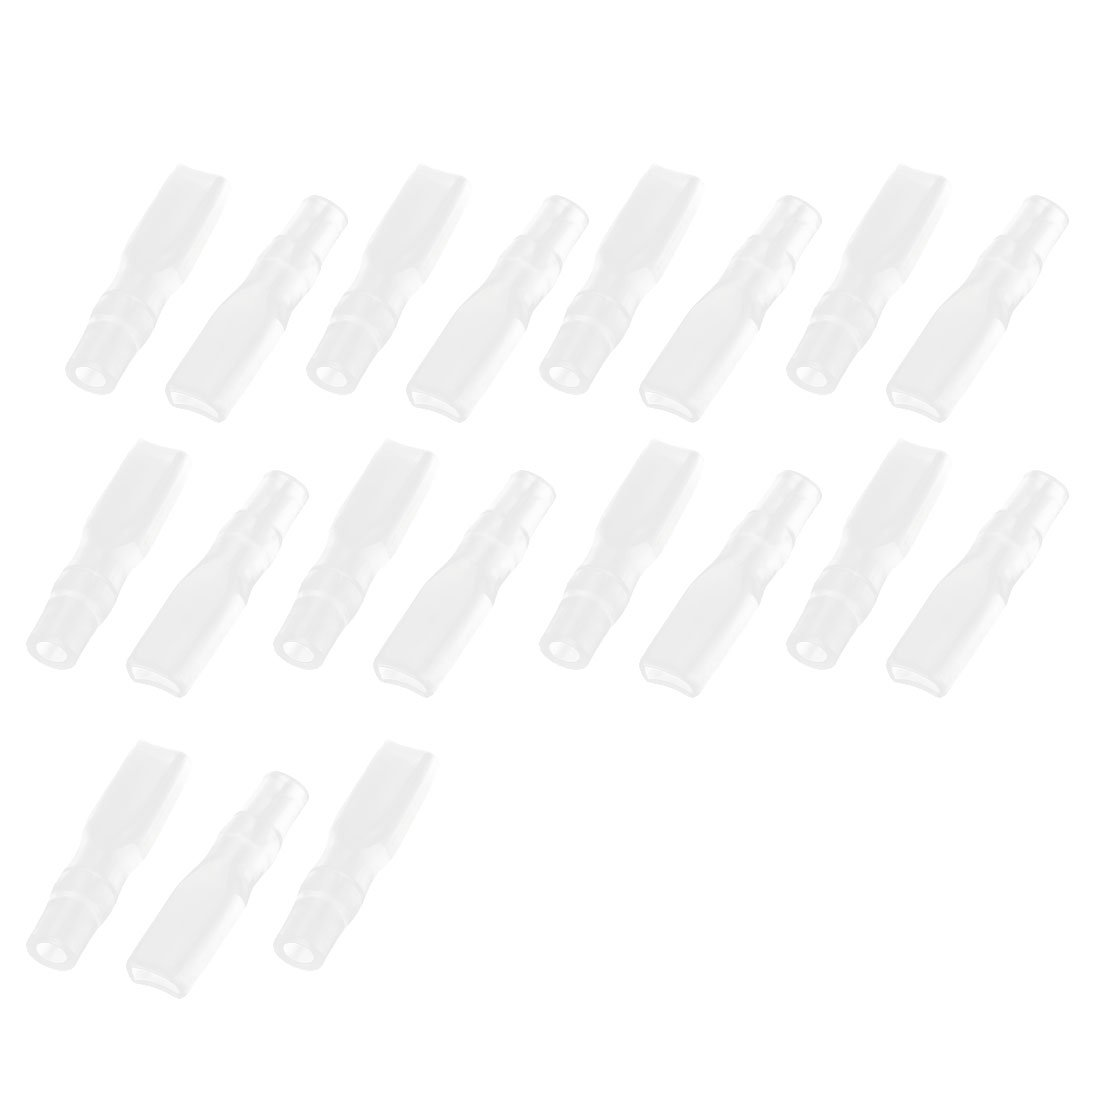 PVC Female Spade Terminal Insulated Sleeve Cover 6.3mm 19pcs Clear